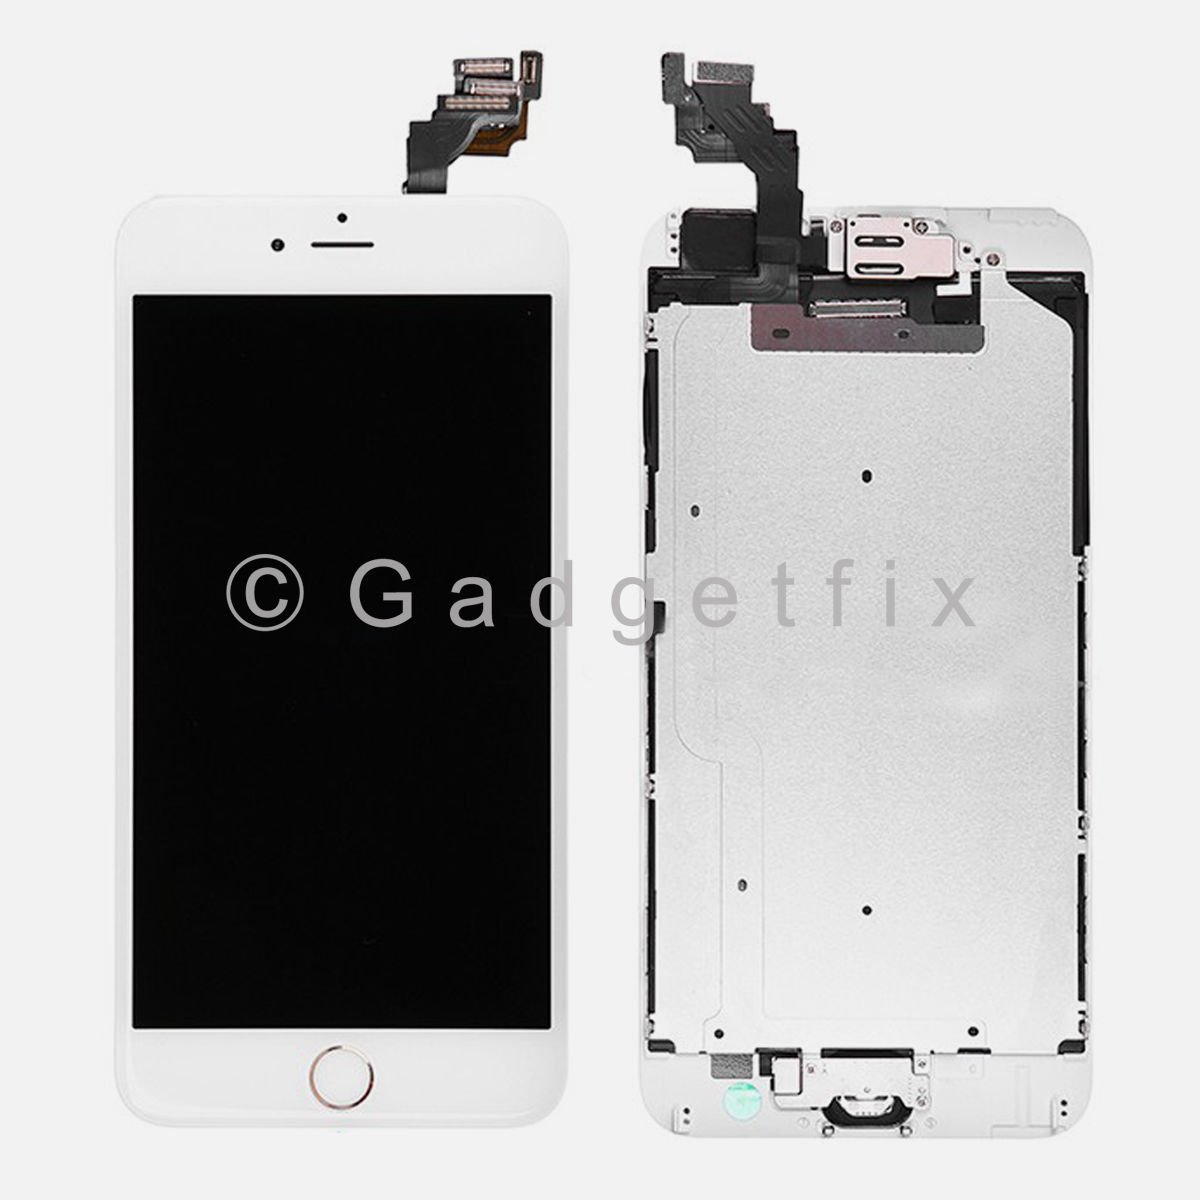 White LCD Touch Screen Display Digitizer + Camera + Gold Button for iPhone 6 Plus